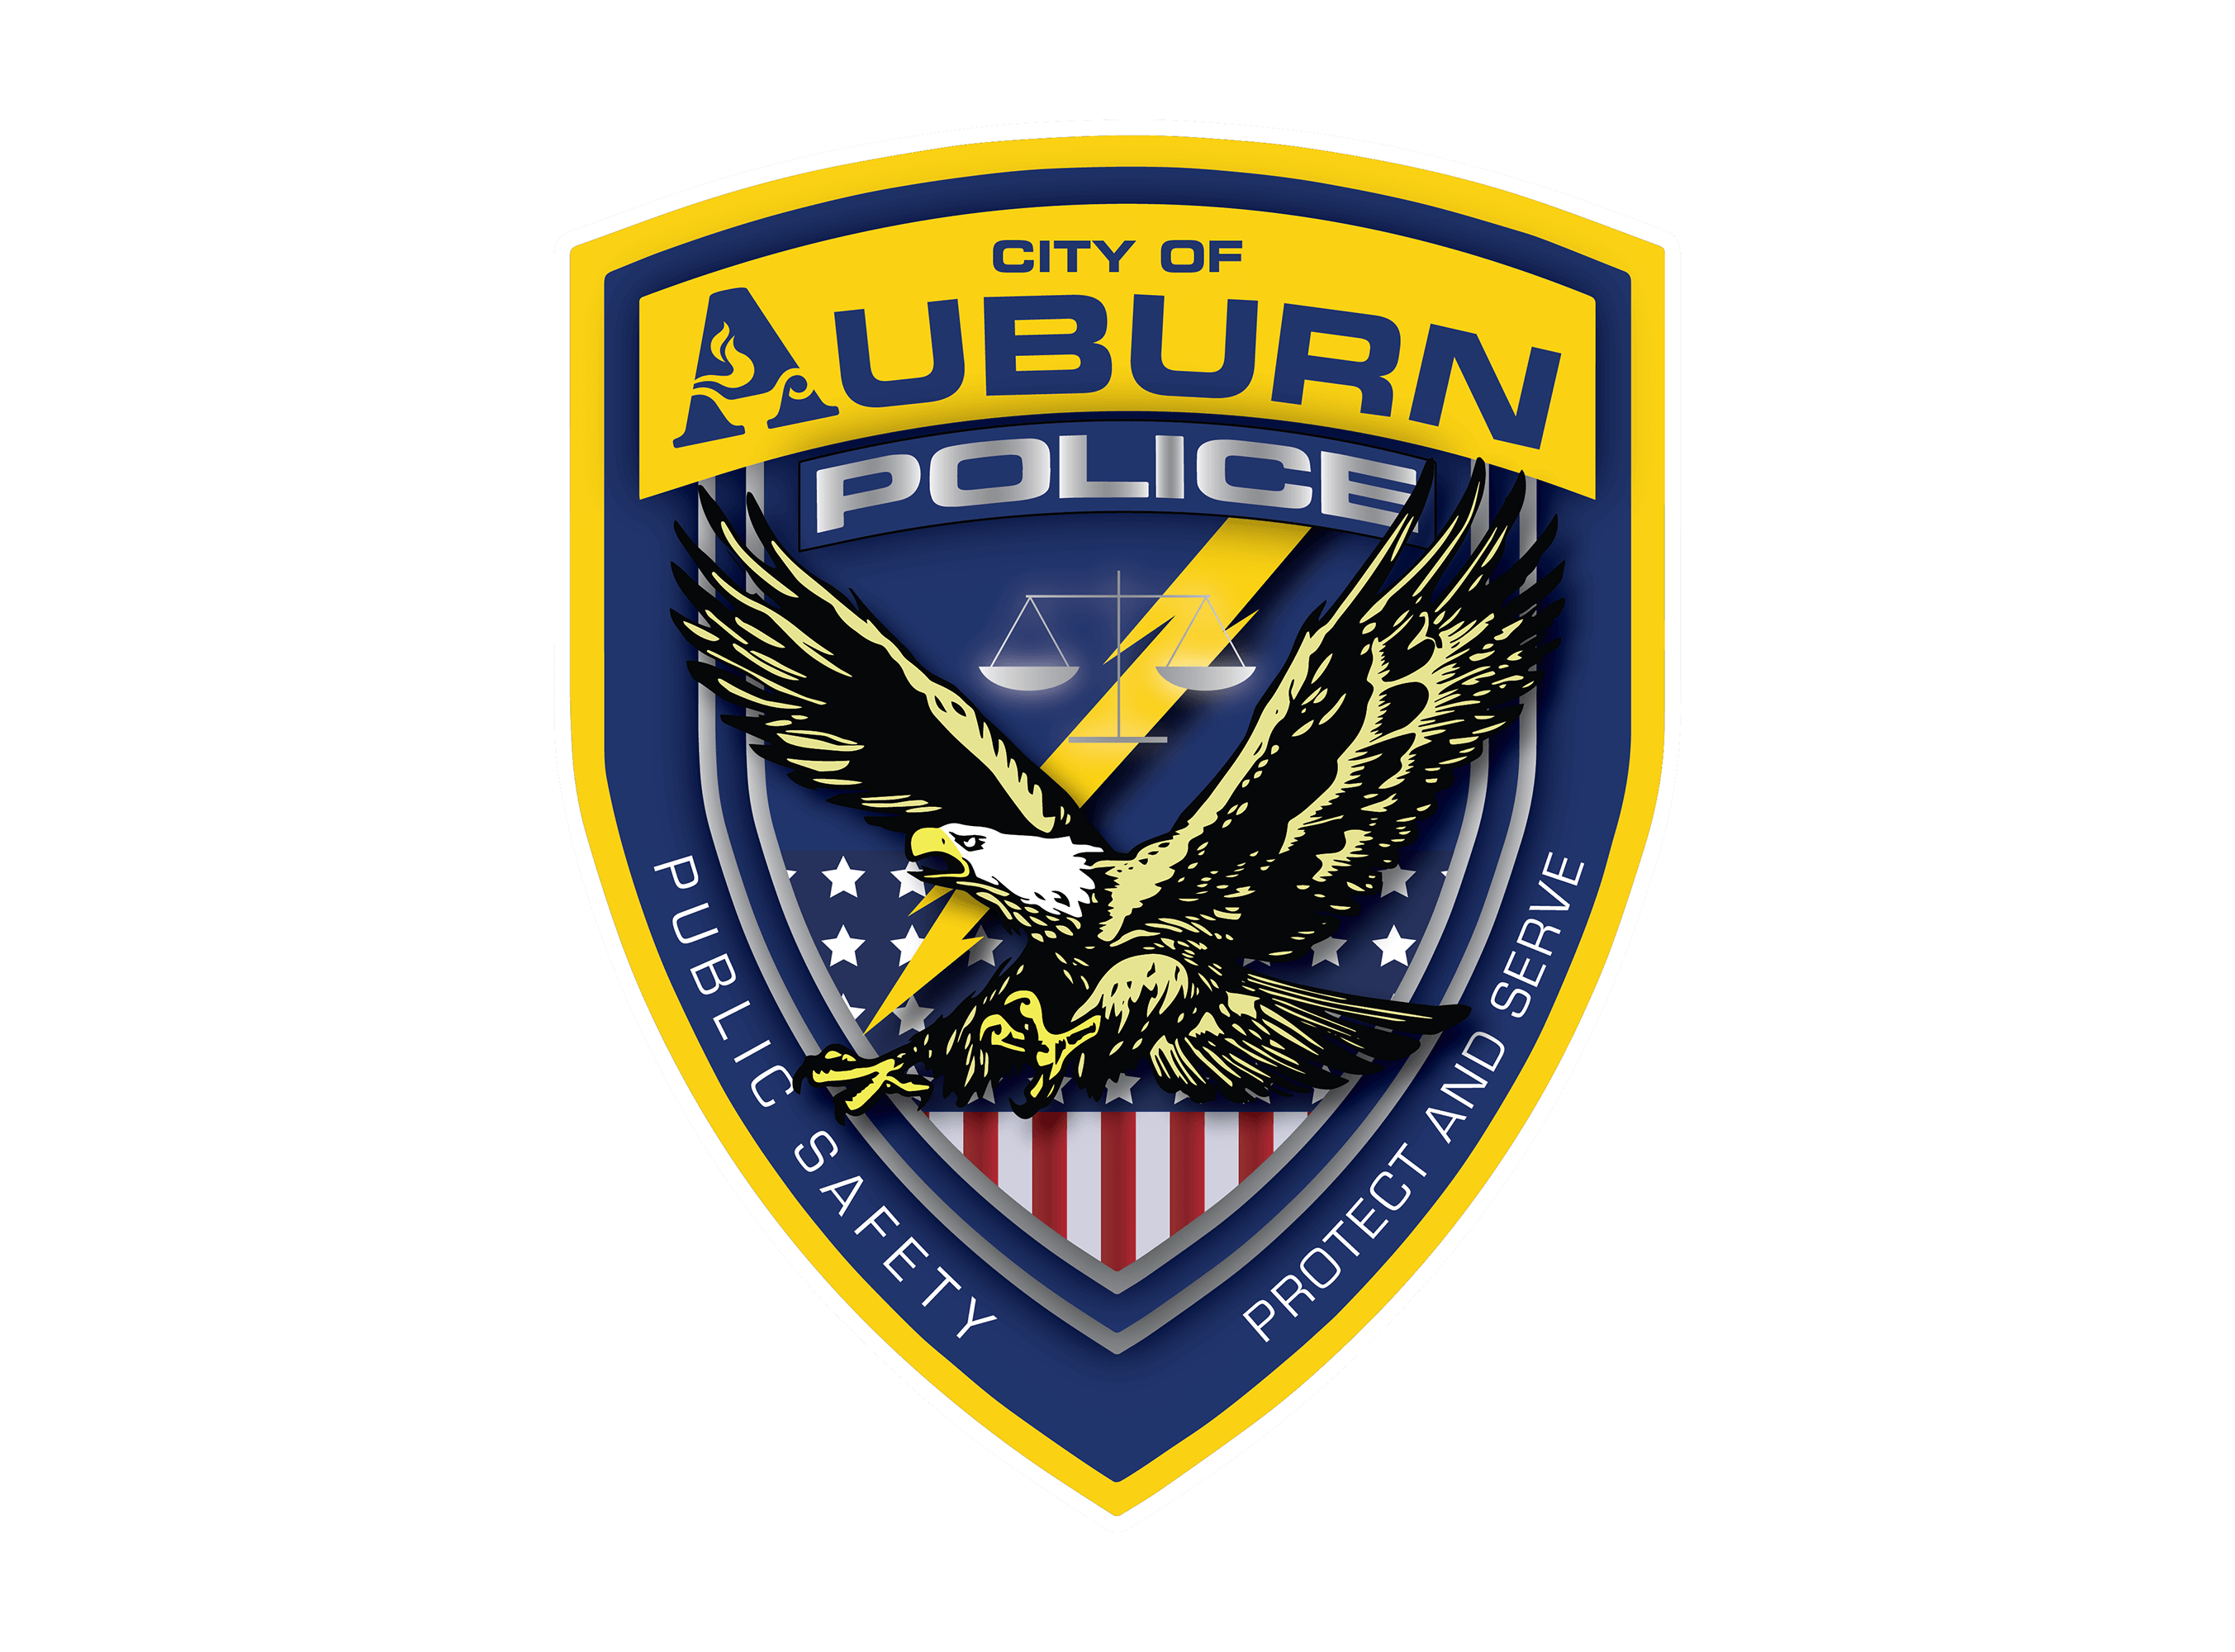 Police - City of Auburn